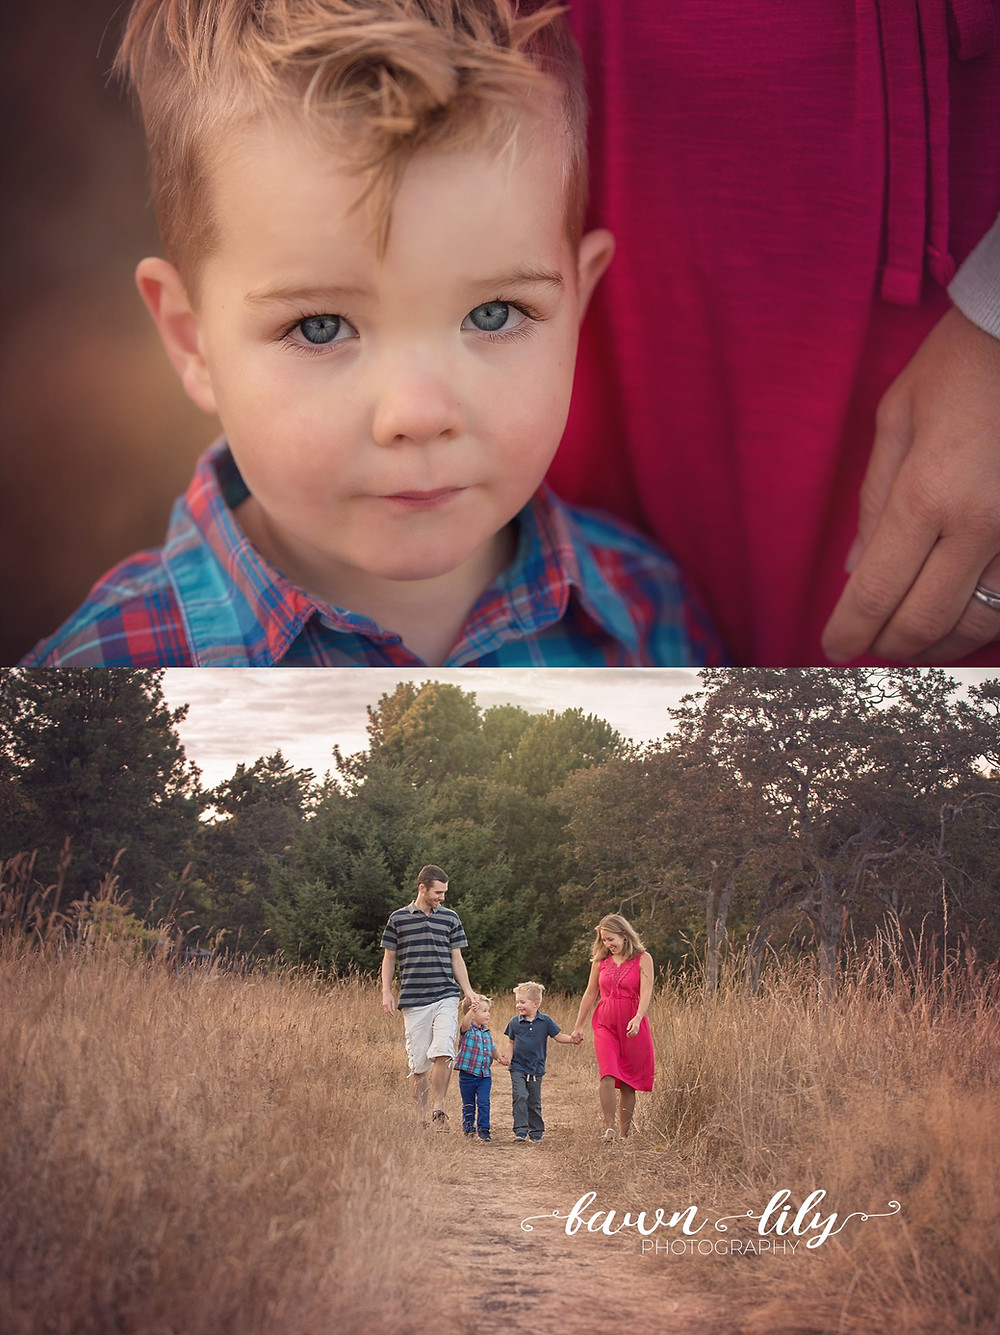 Cute little boy, Family Photography, Lifestyle Family Photography, Victoria BC Family Photographer, Sidney BC, Victoria BC Family Photographer